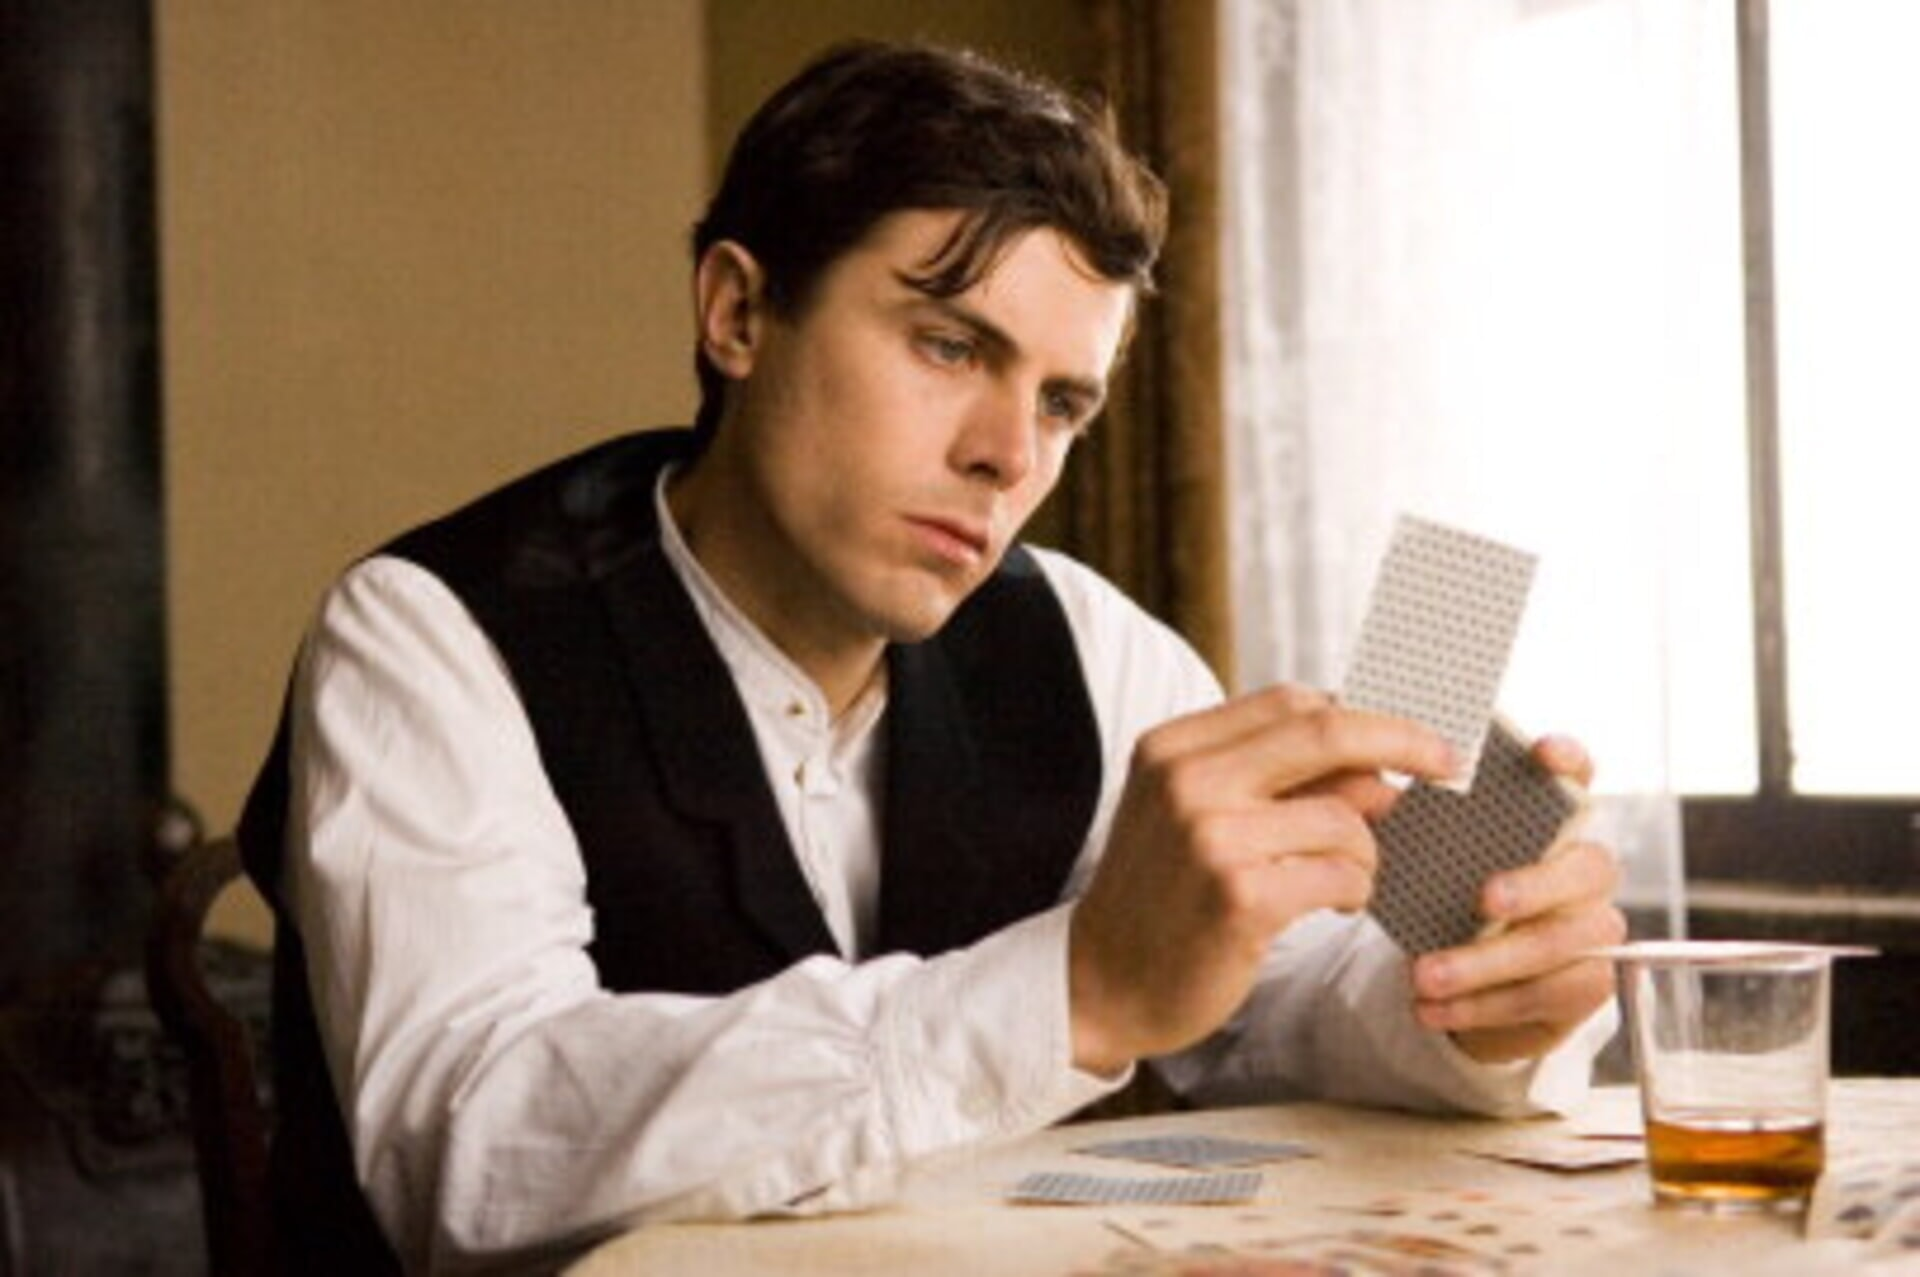 The Assassination of Jesse James by the Coward Robert Ford - Image 27